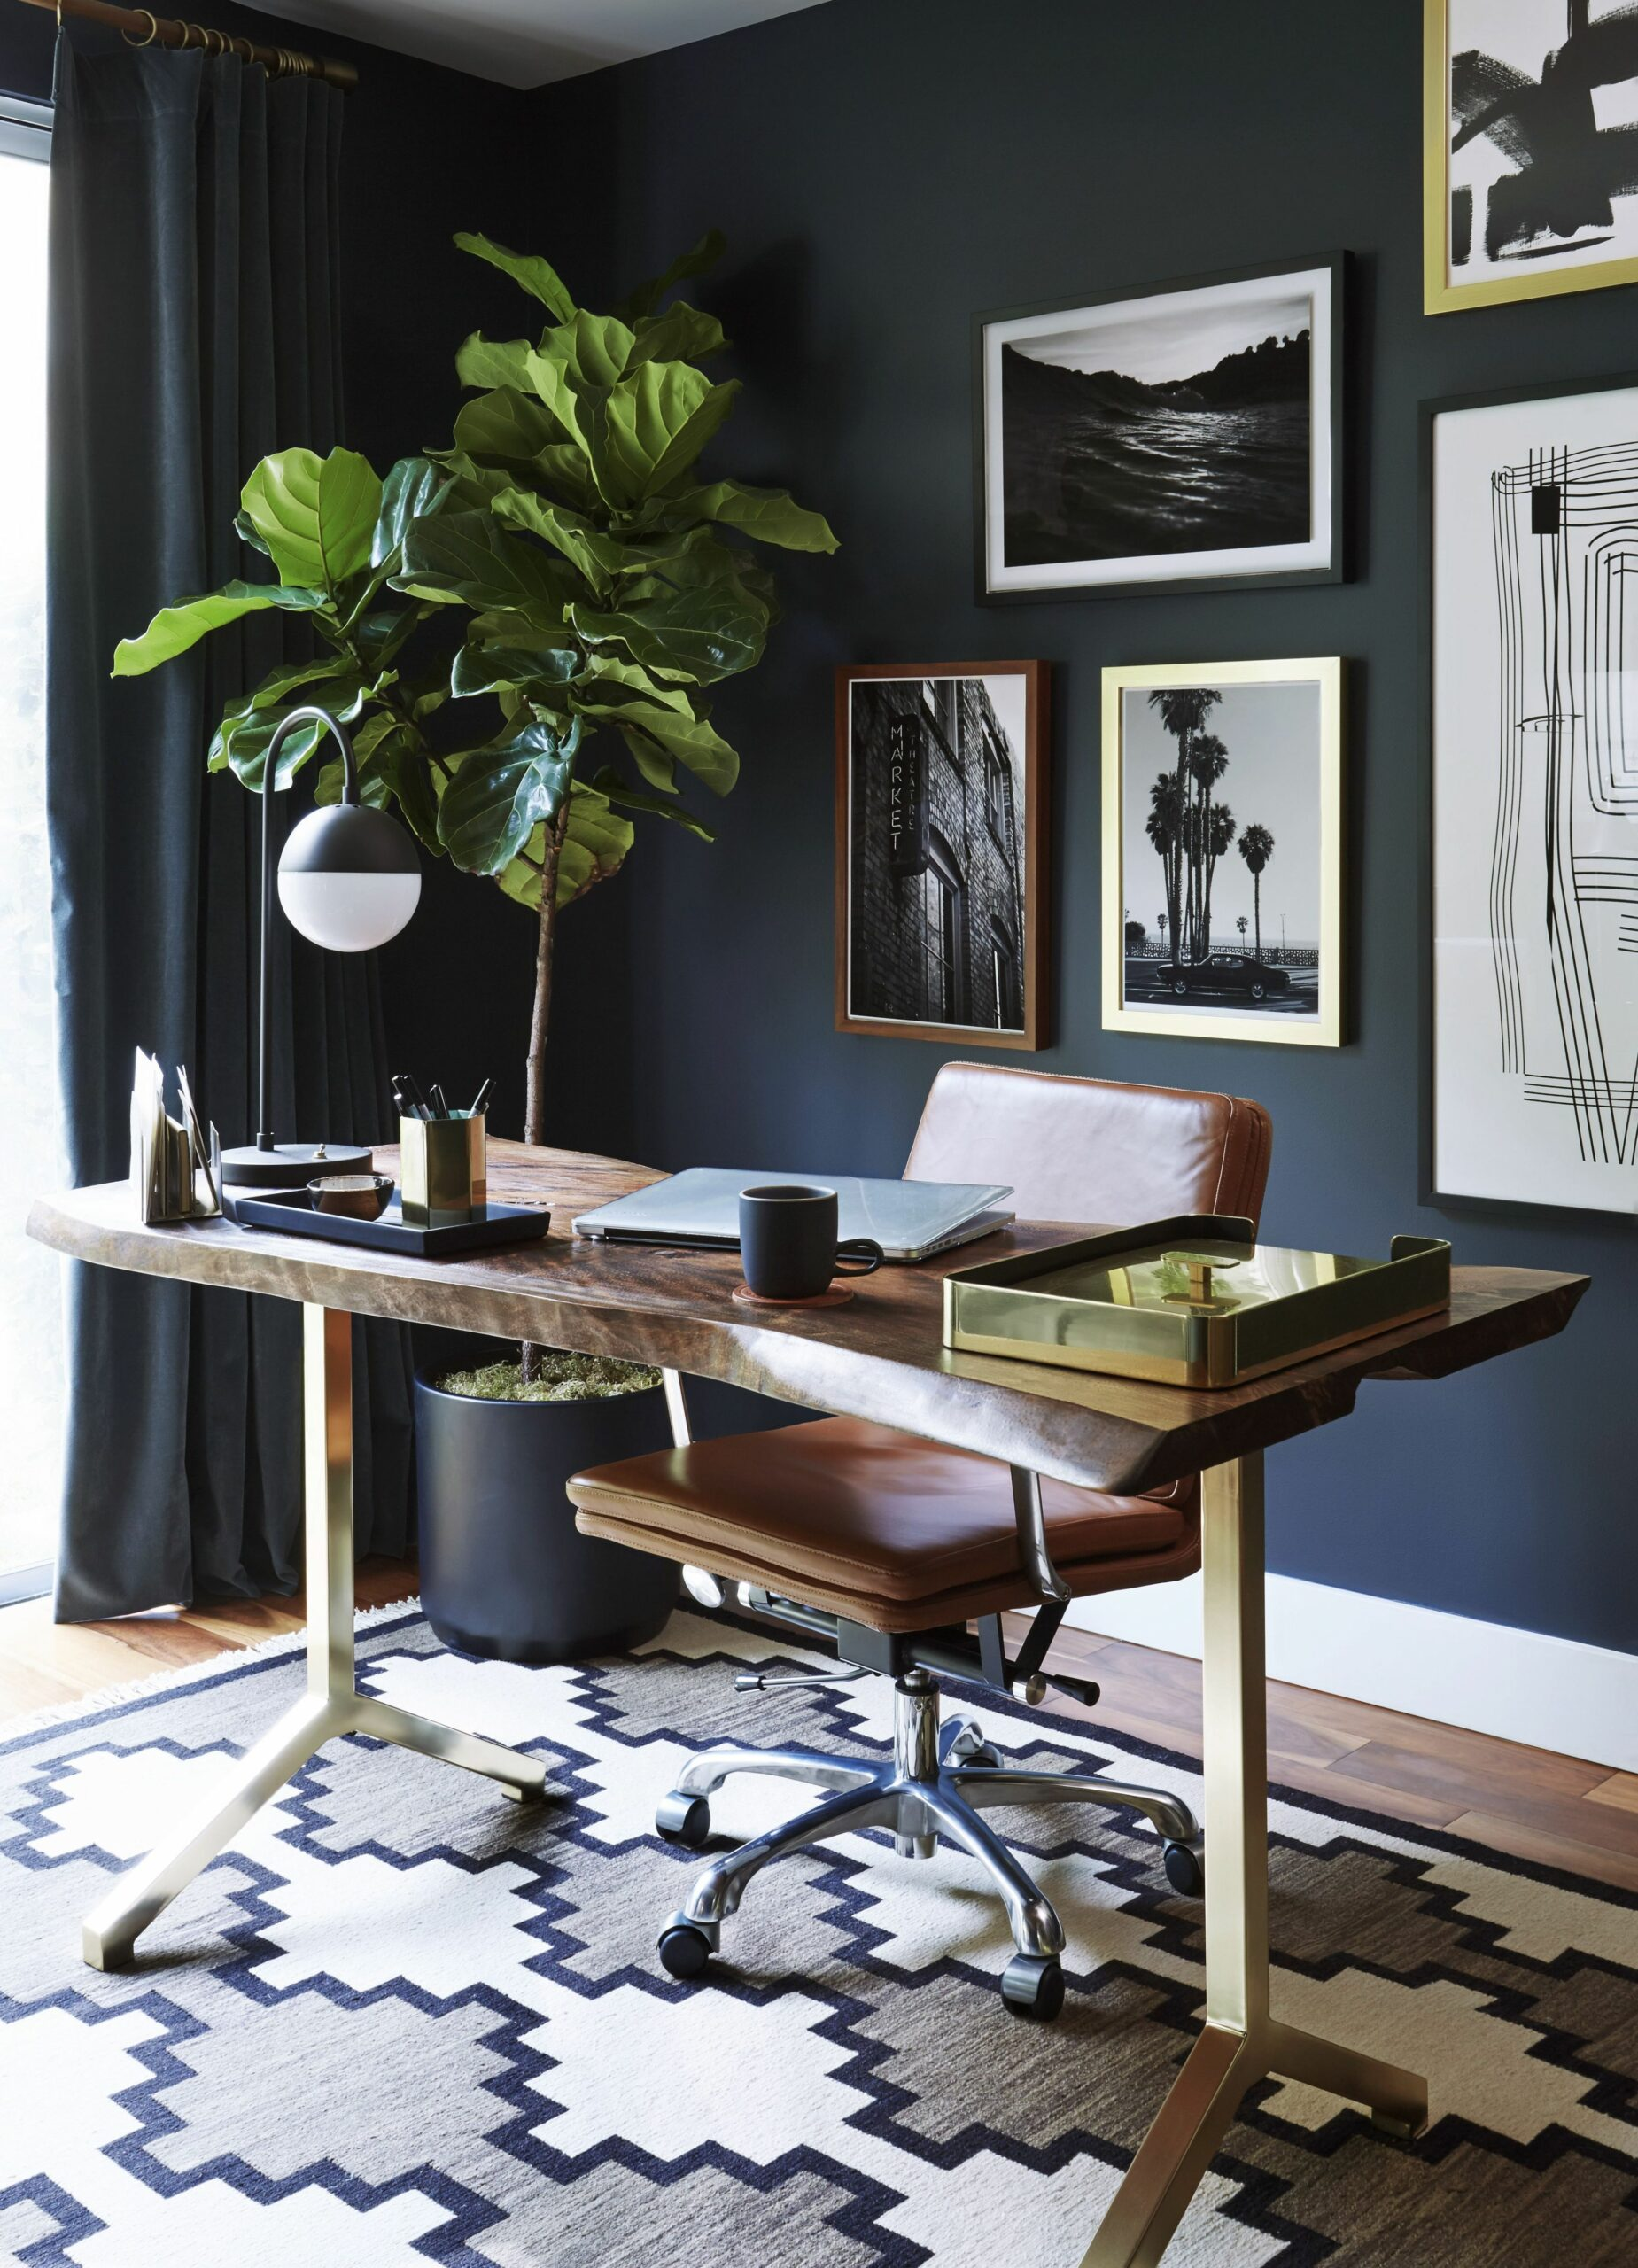 8 Feng Shui Home Office Design Ideas - home office ideas images